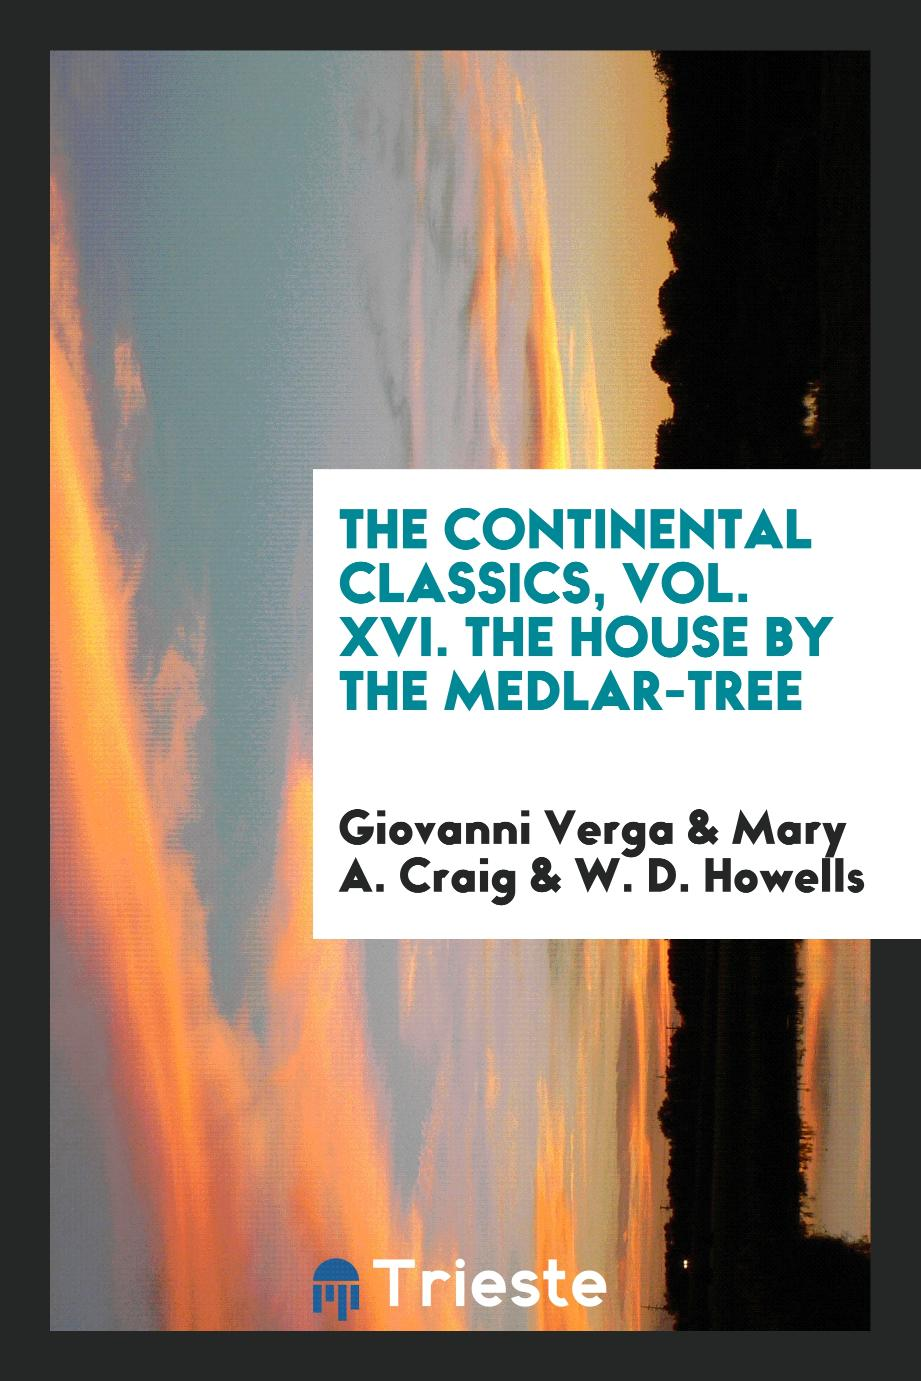 The Continental Classics, Vol. XVI. The House by the Medlar-Tree